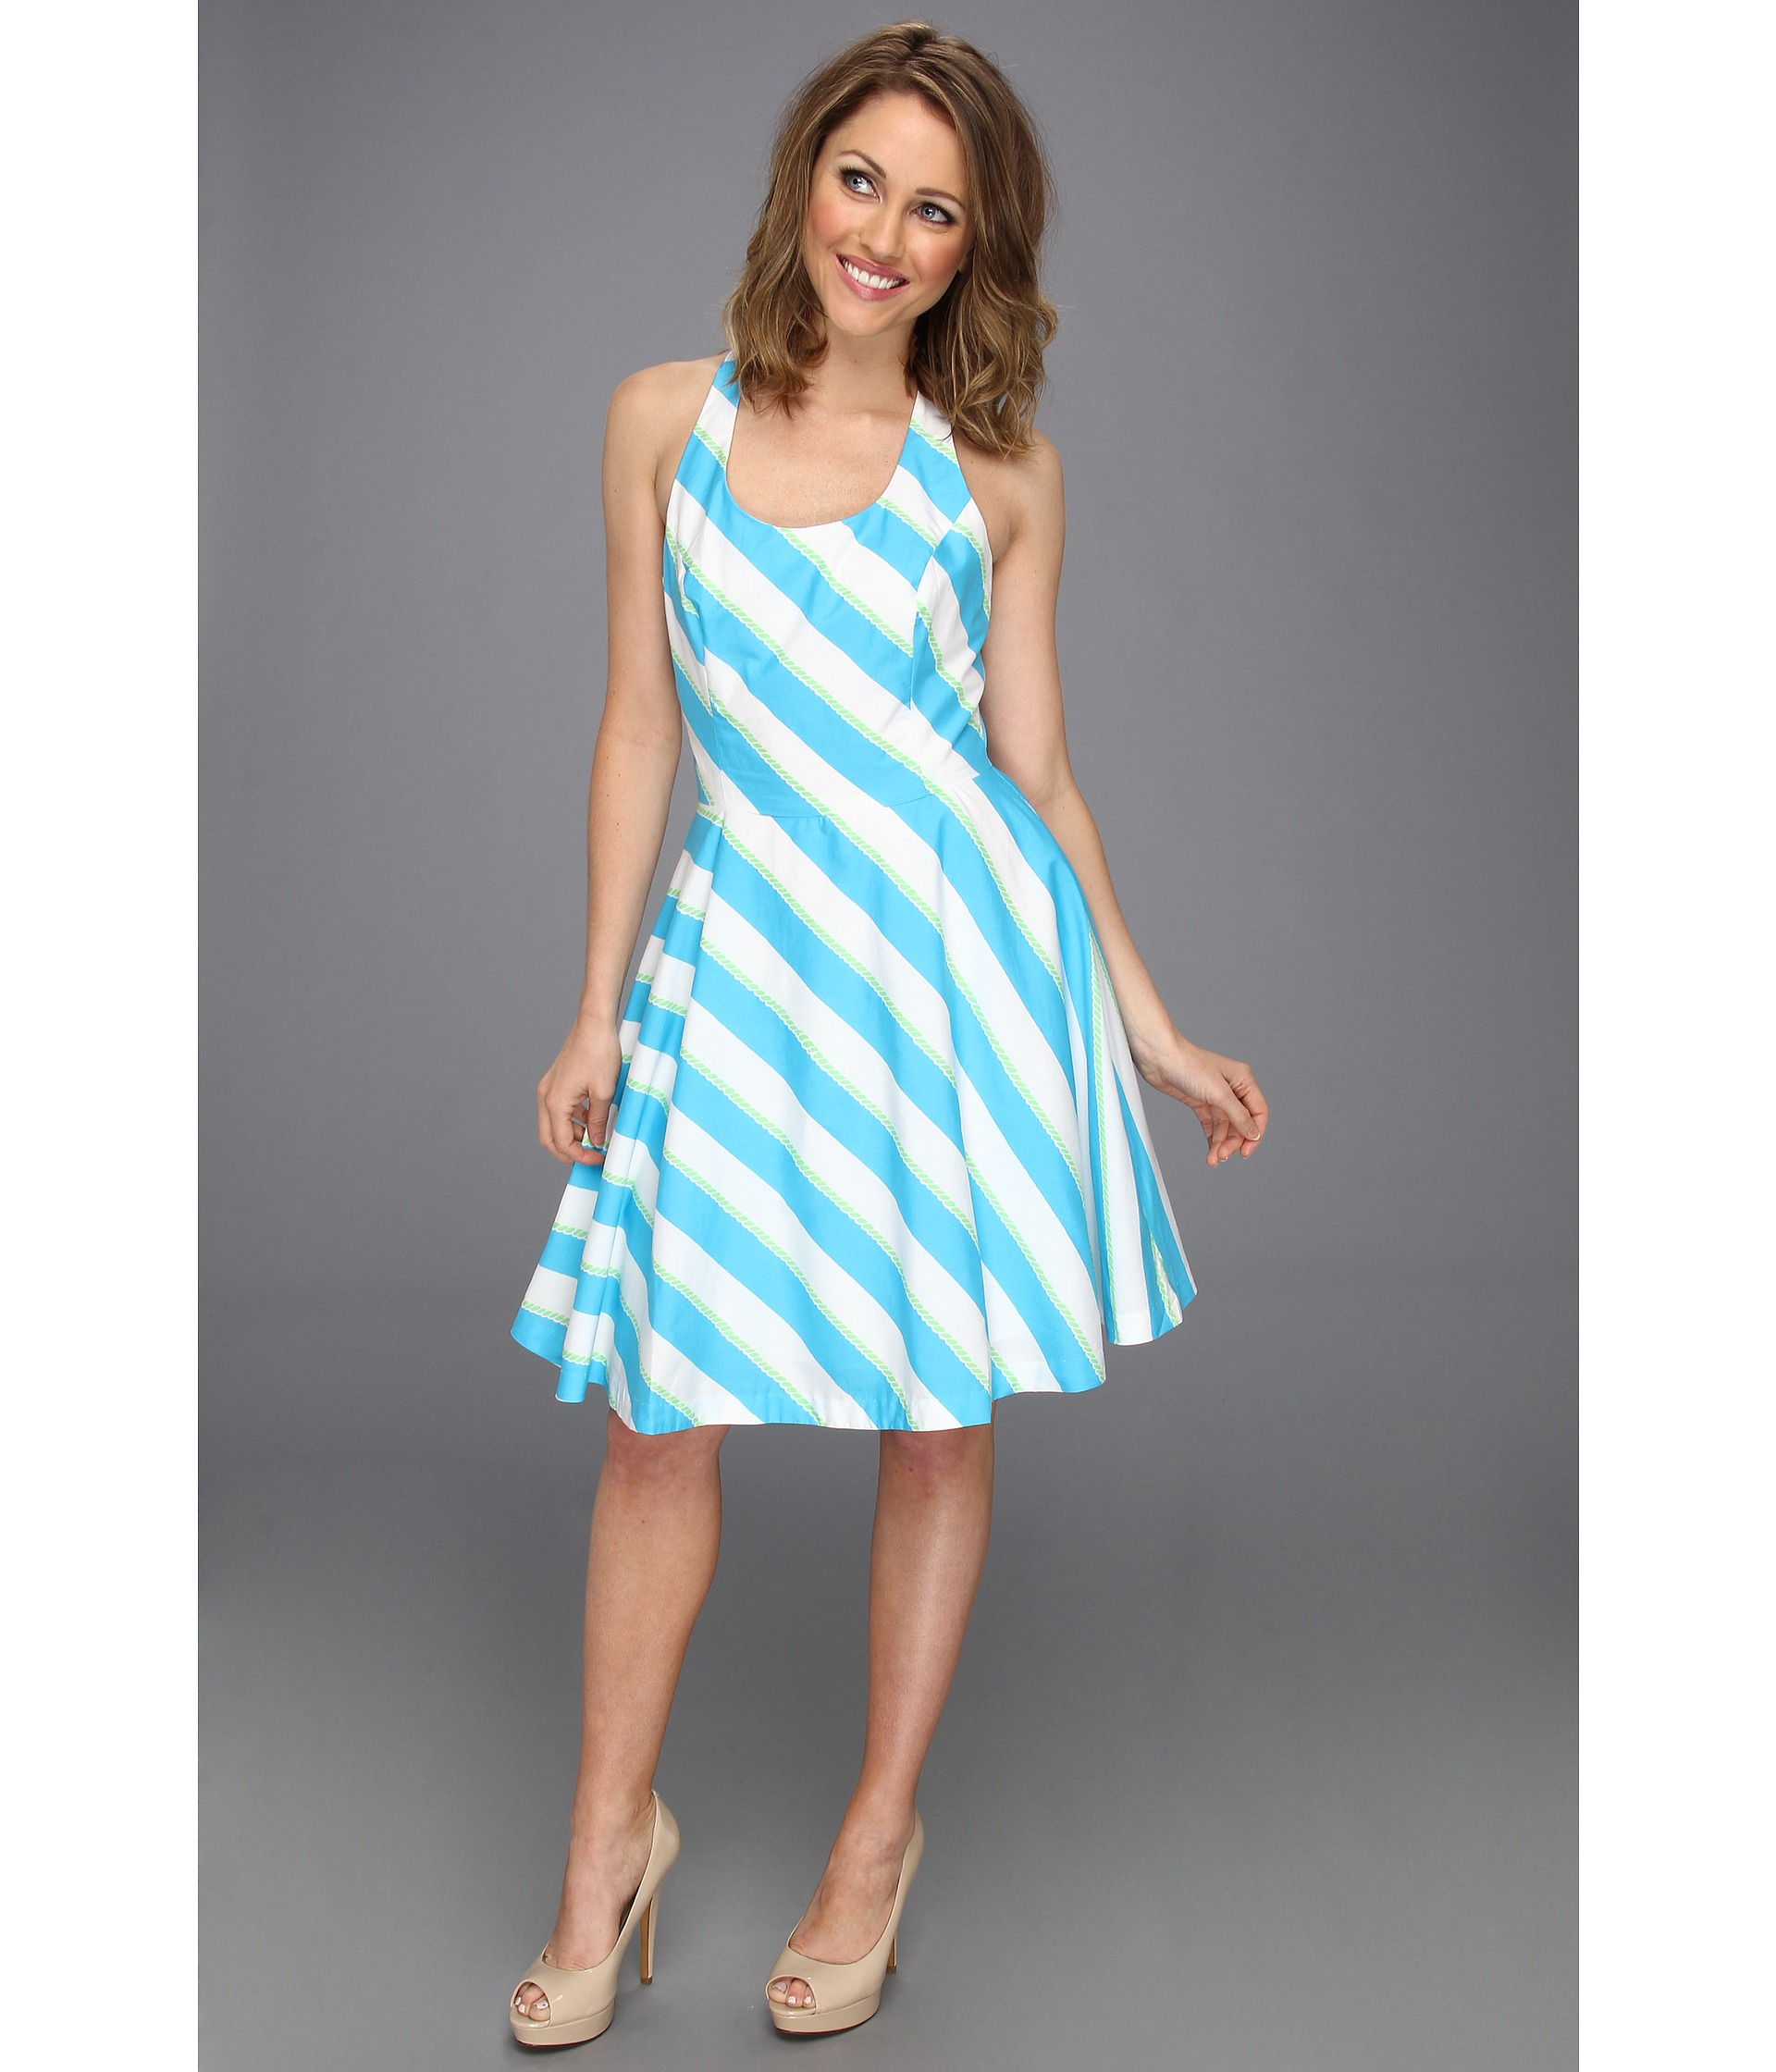 Lilly Pulitzer Sale Dresses Clearance Lilly Pulitzer Zo Dress pm